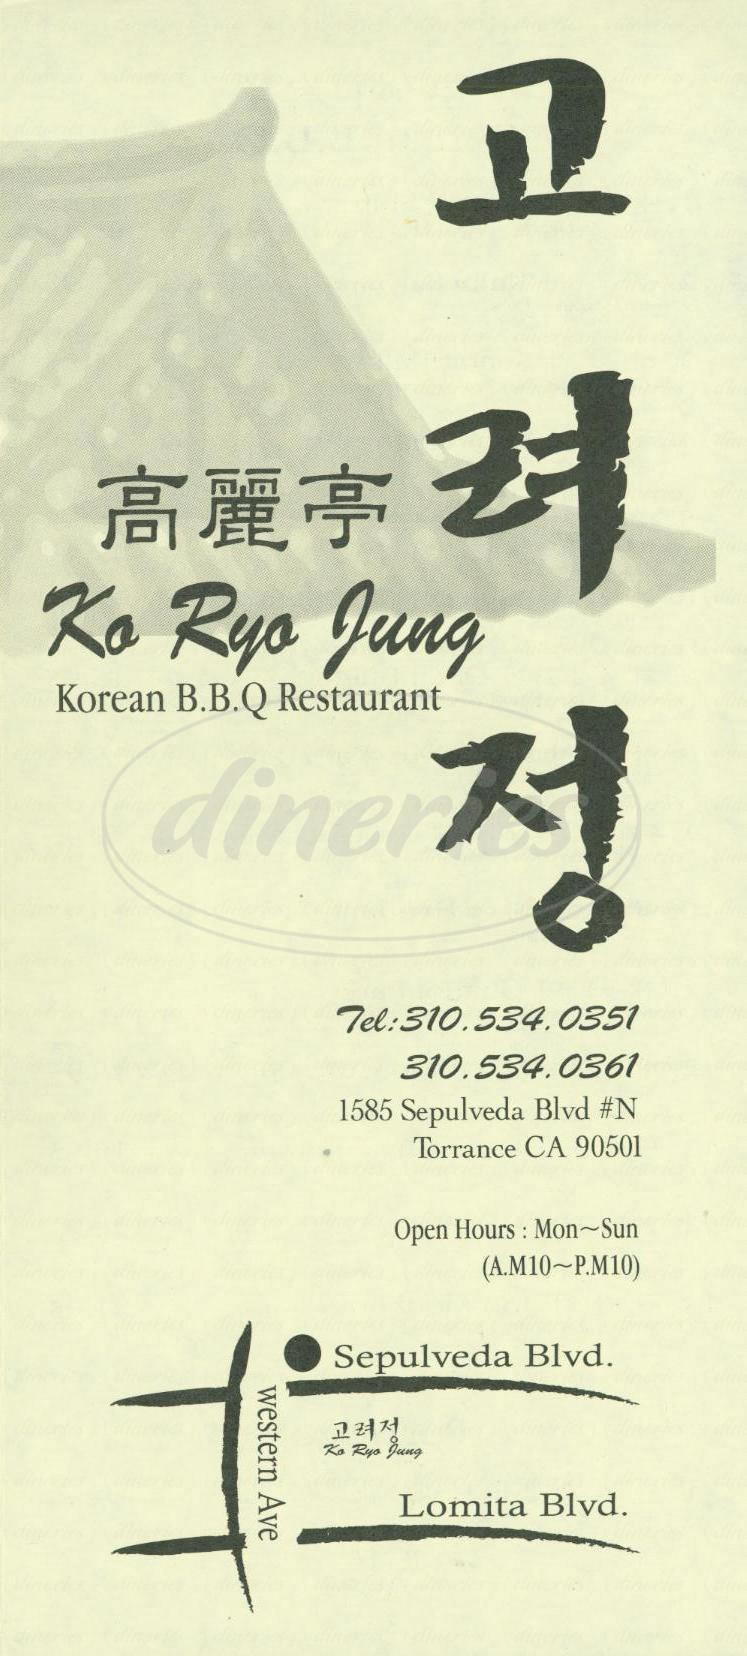 menu for Koryojung Restaurant